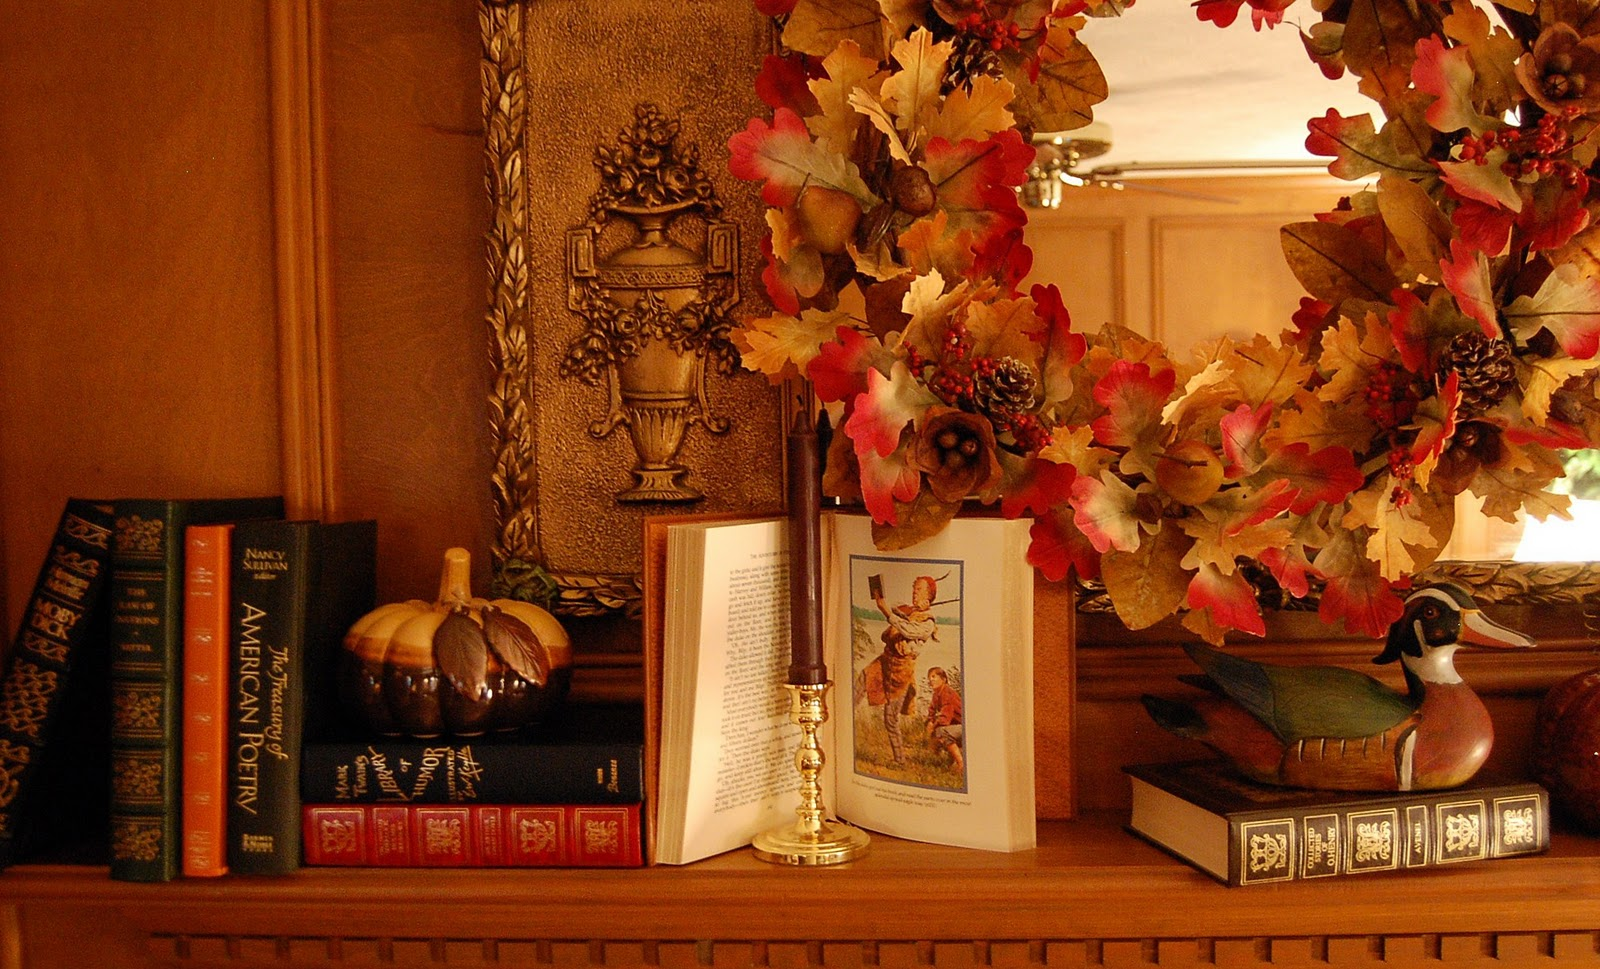 Decorate a Fireplace Mantel for Fall or Autumn with Books Pumpkins and a Fall Wreath